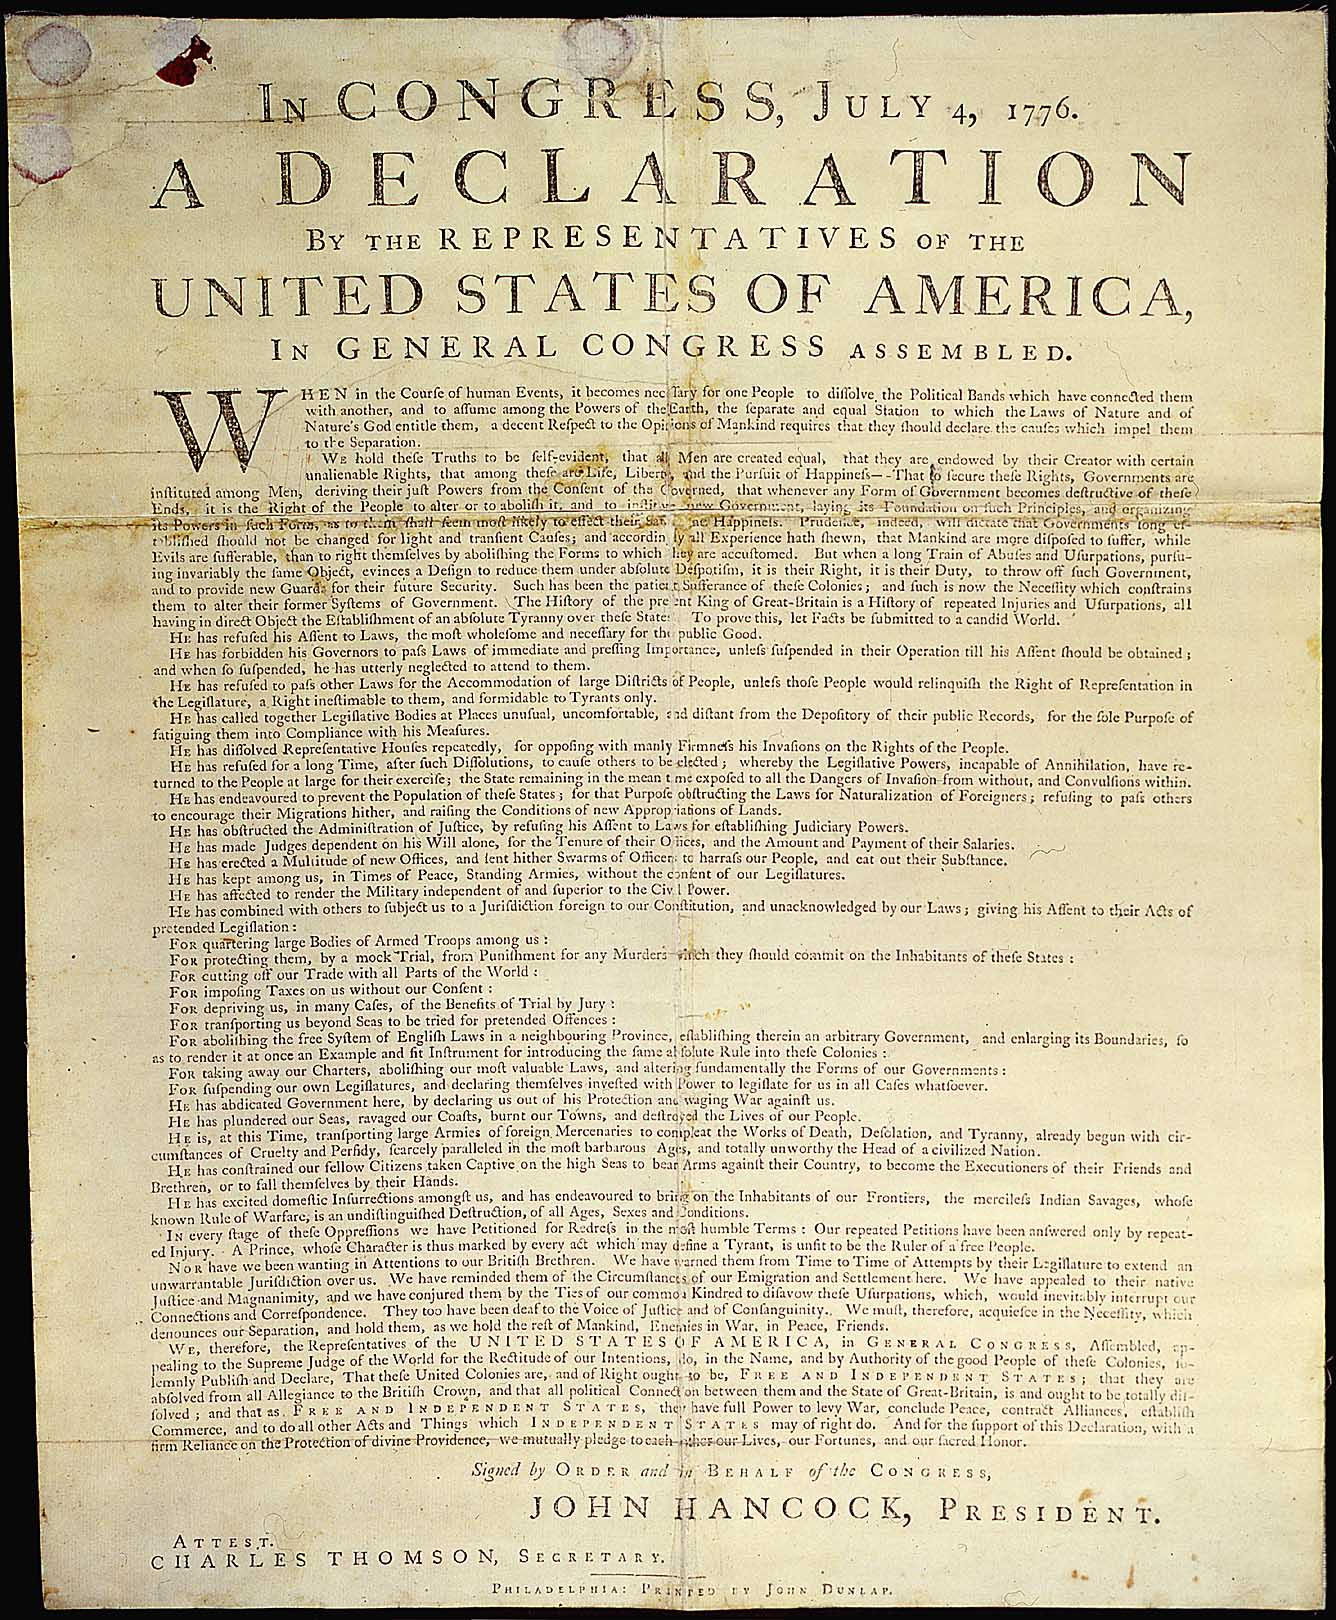 It is an image of Shocking Printable Copy of the Declaration of Independence